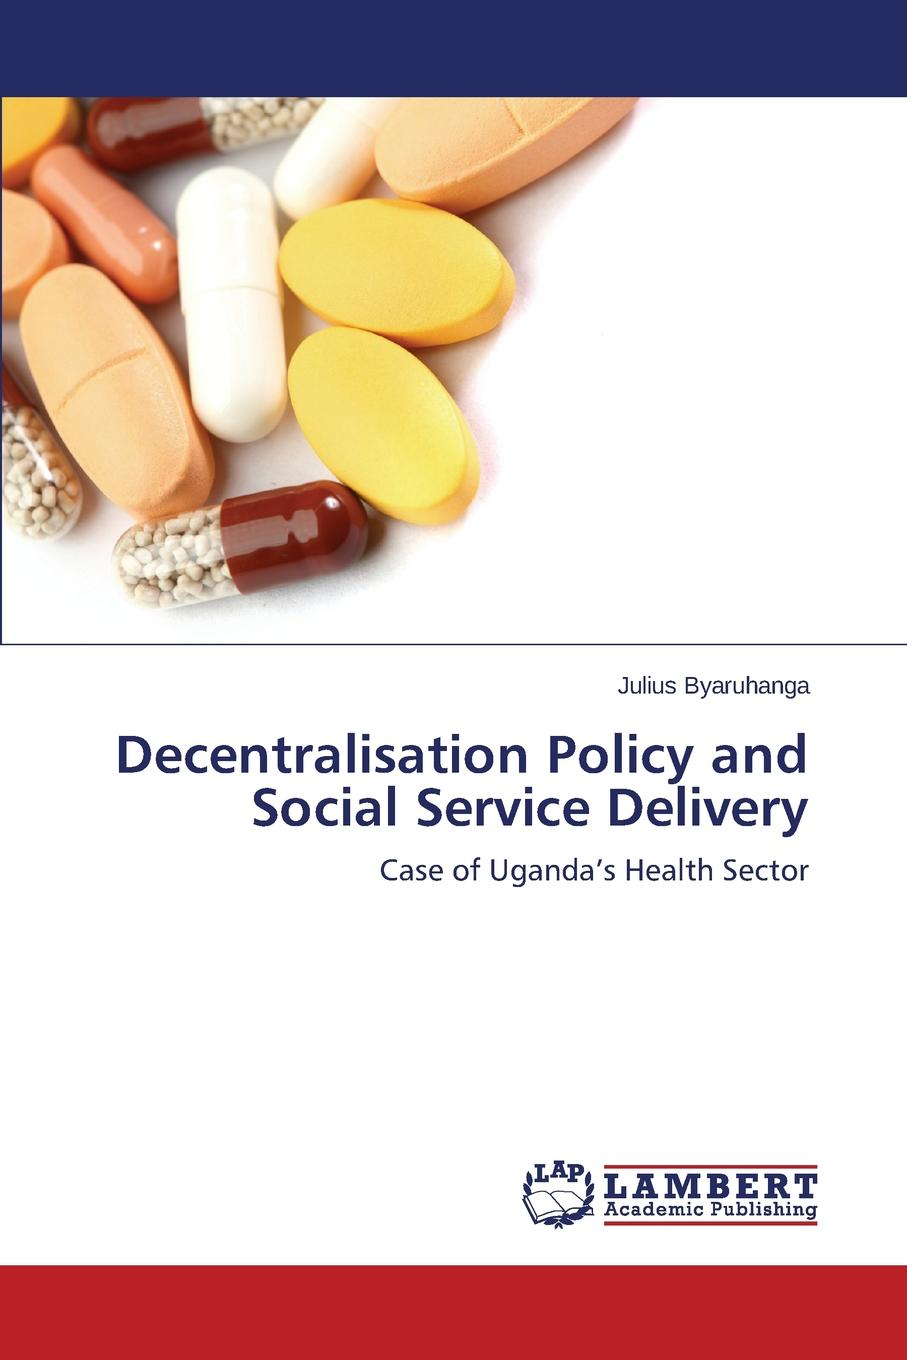 Byaruhanga Julius Decentralisation Policy and Social Service Delivery dynamics of managerial effectiveness